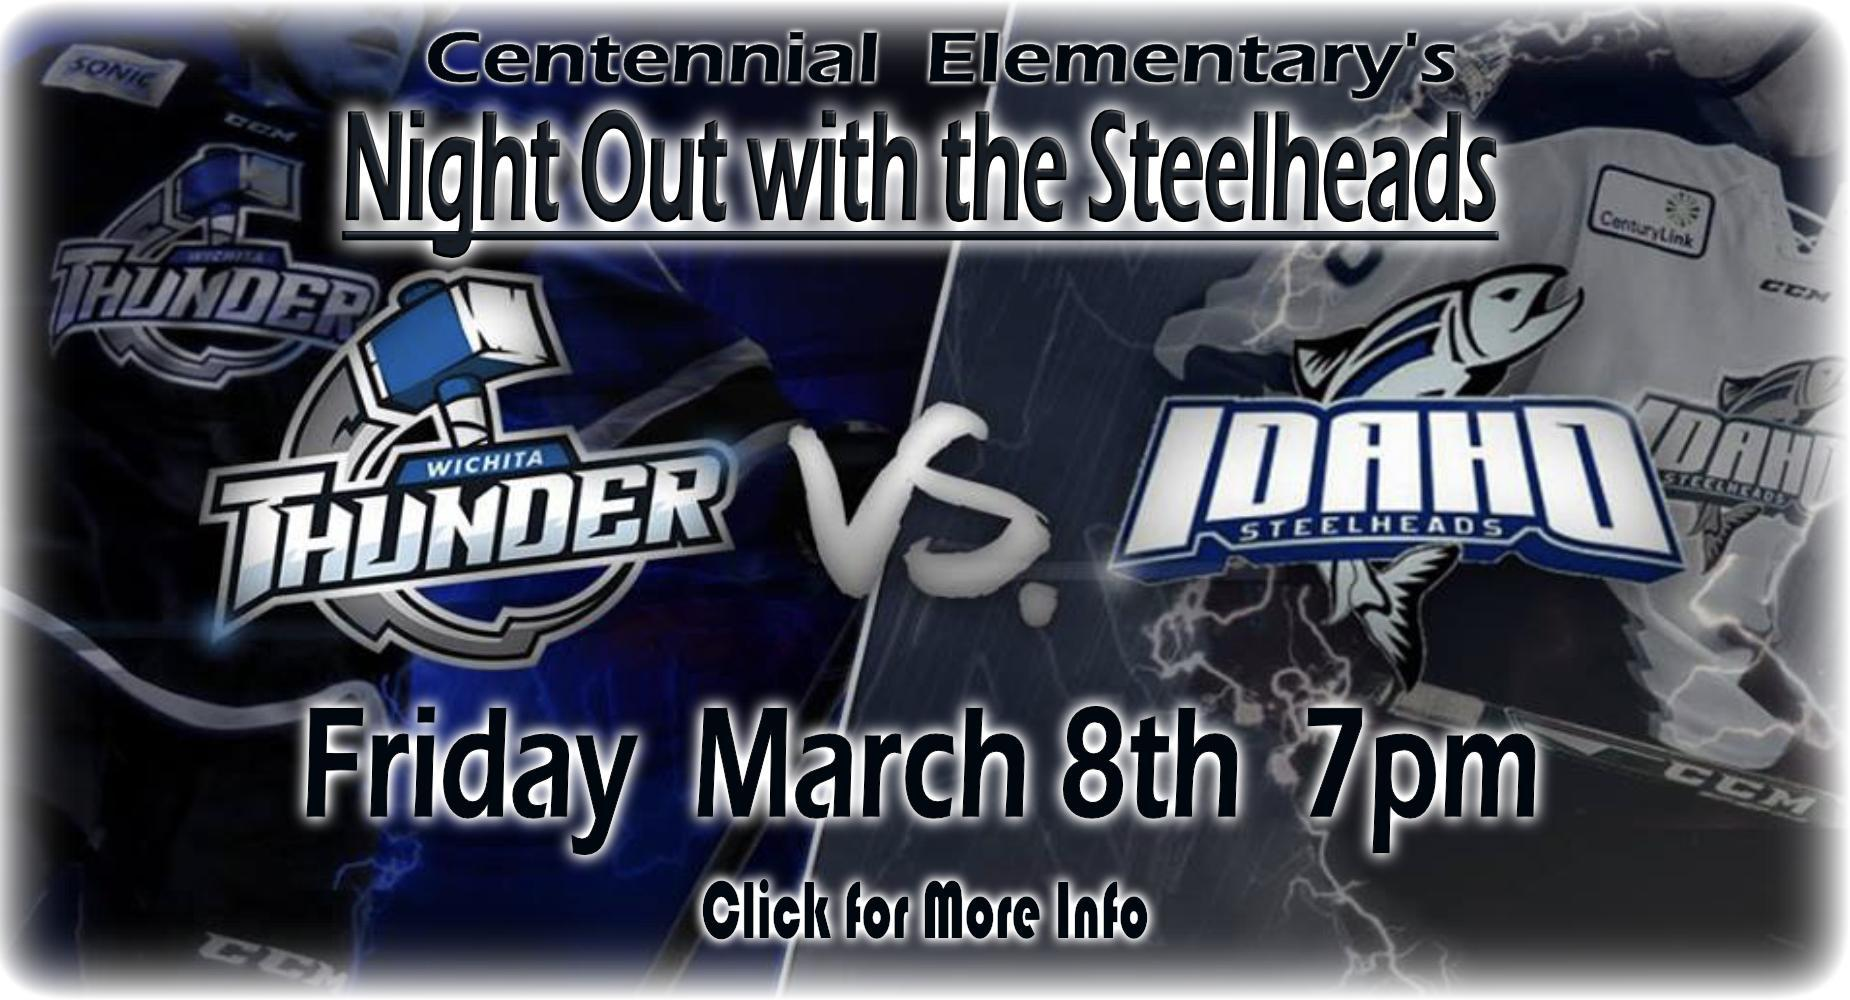 Night Out with the Steelheads - March 8th 7pm